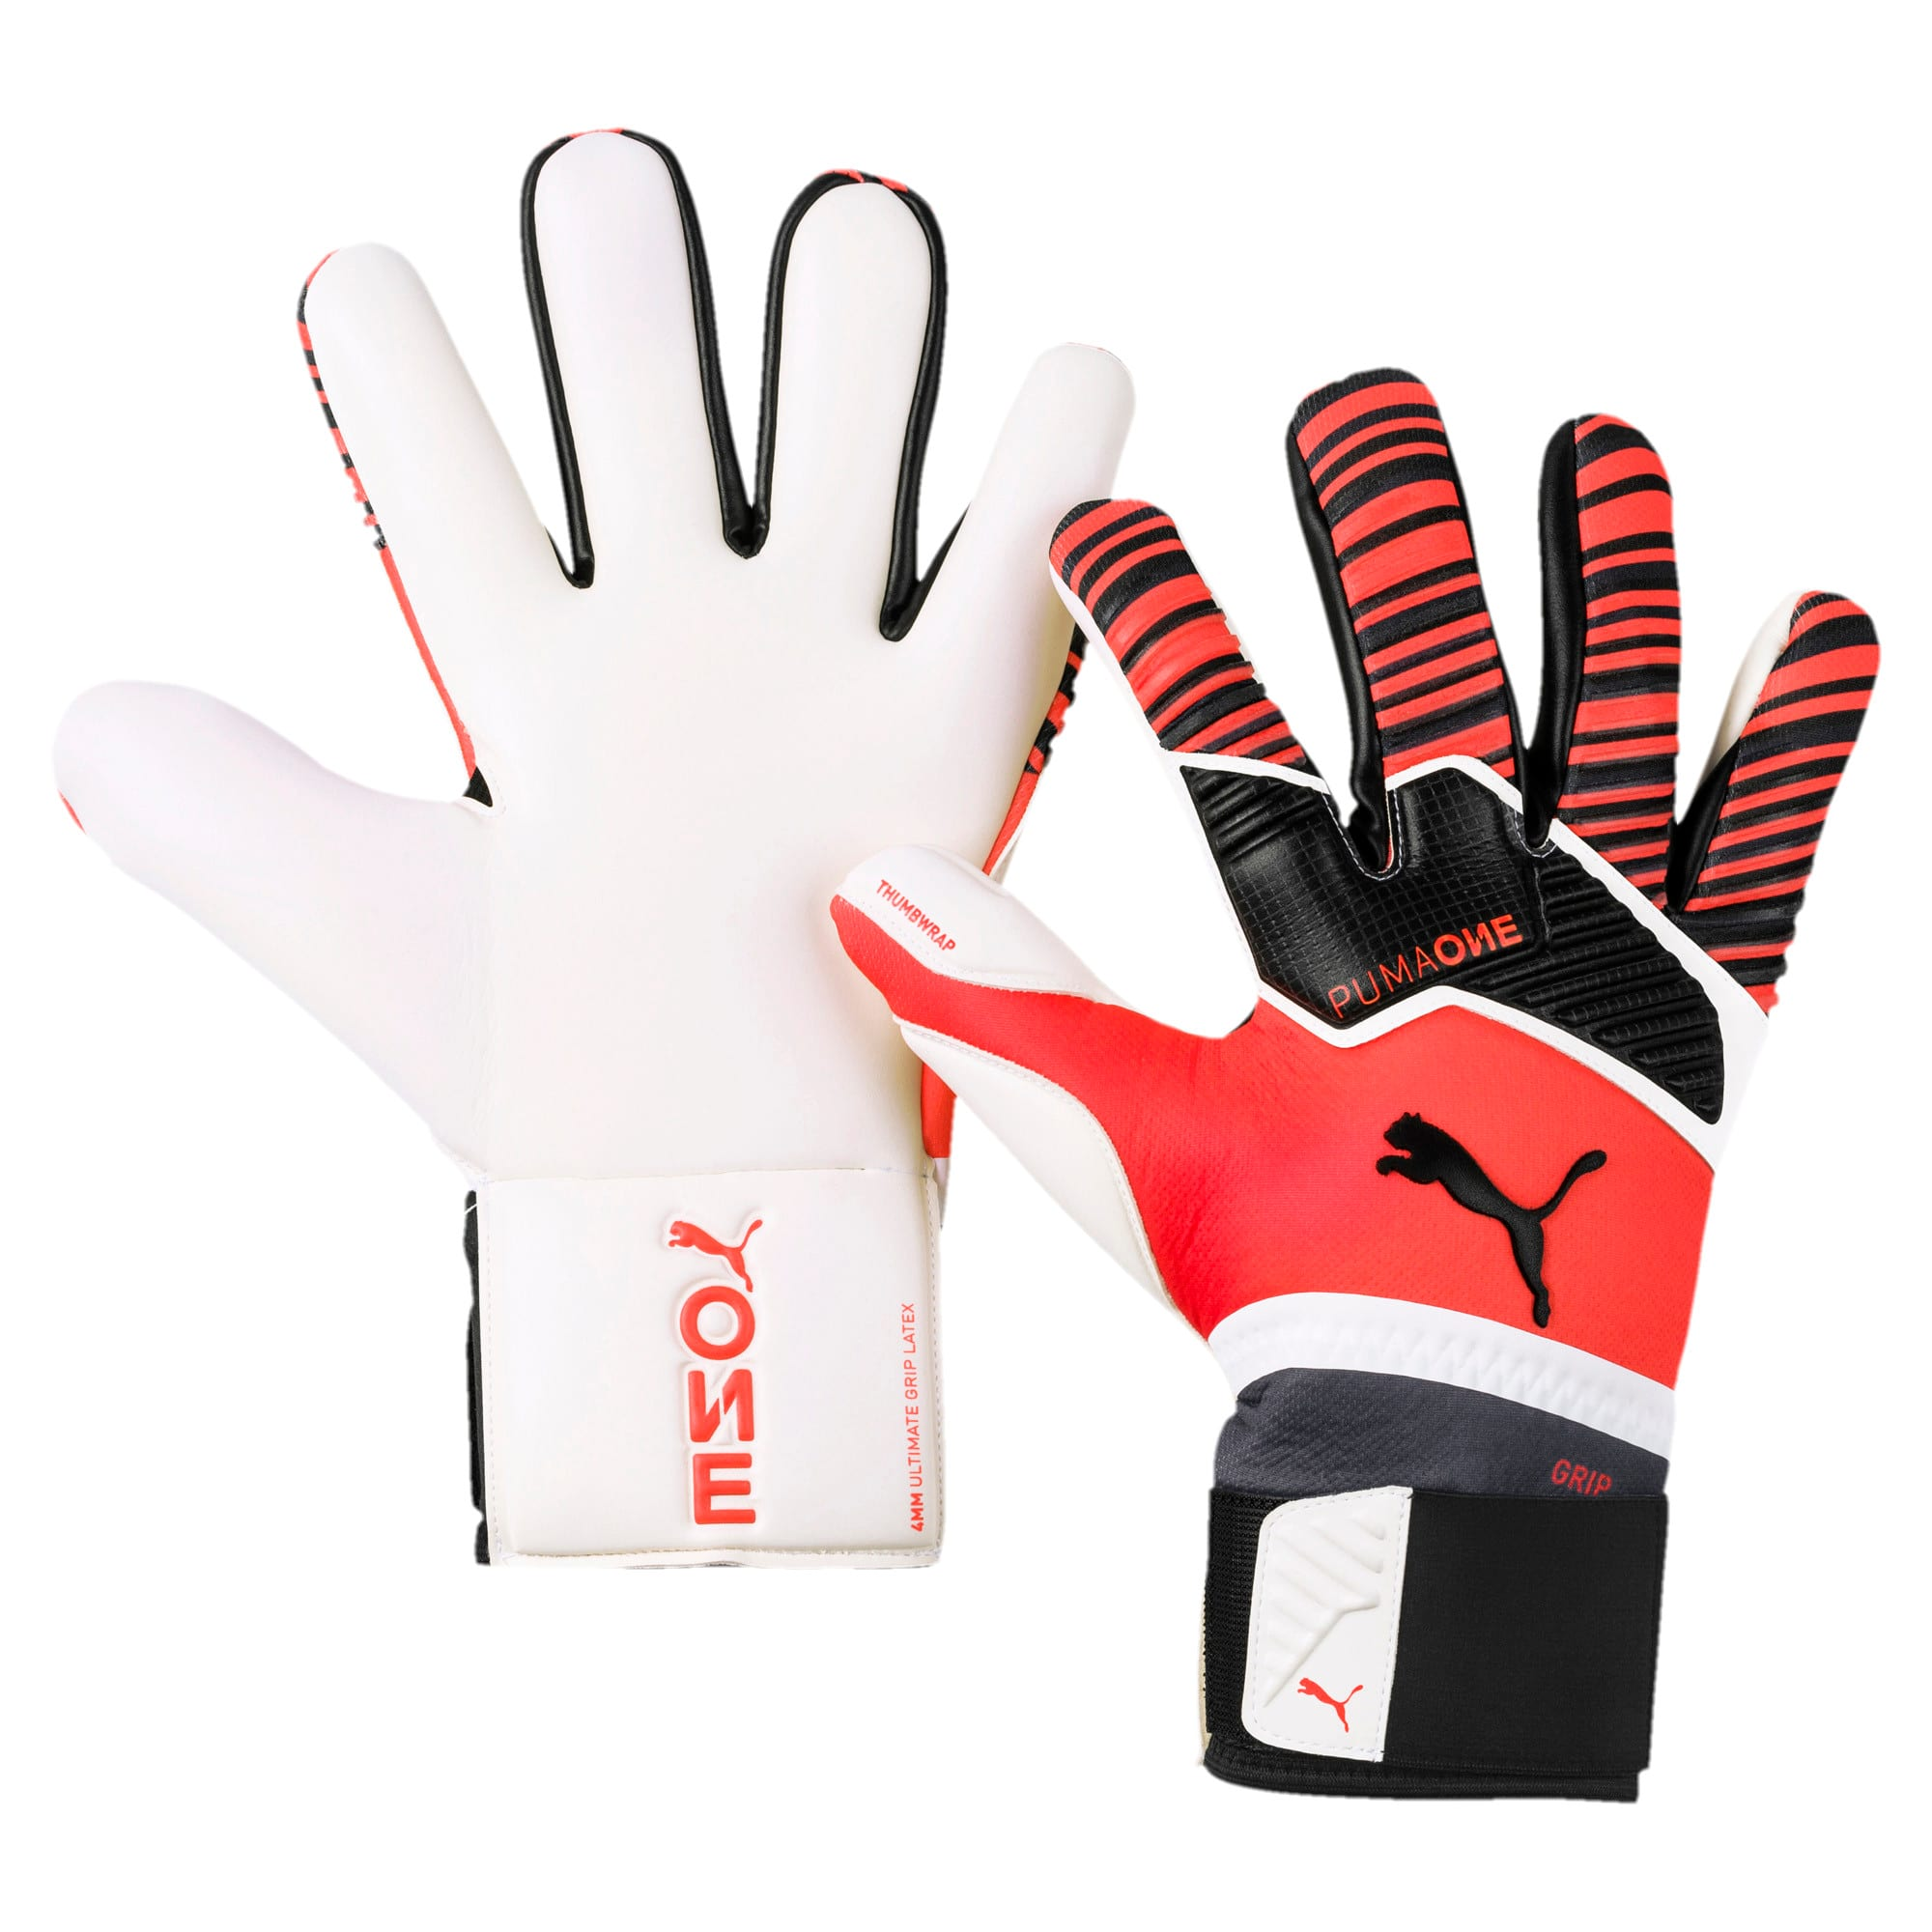 Thumbnail 1 of PUMA One Grip 1 Hybrid Pro Goalkeeper Gloves, Nrgy Red-Black-White, medium